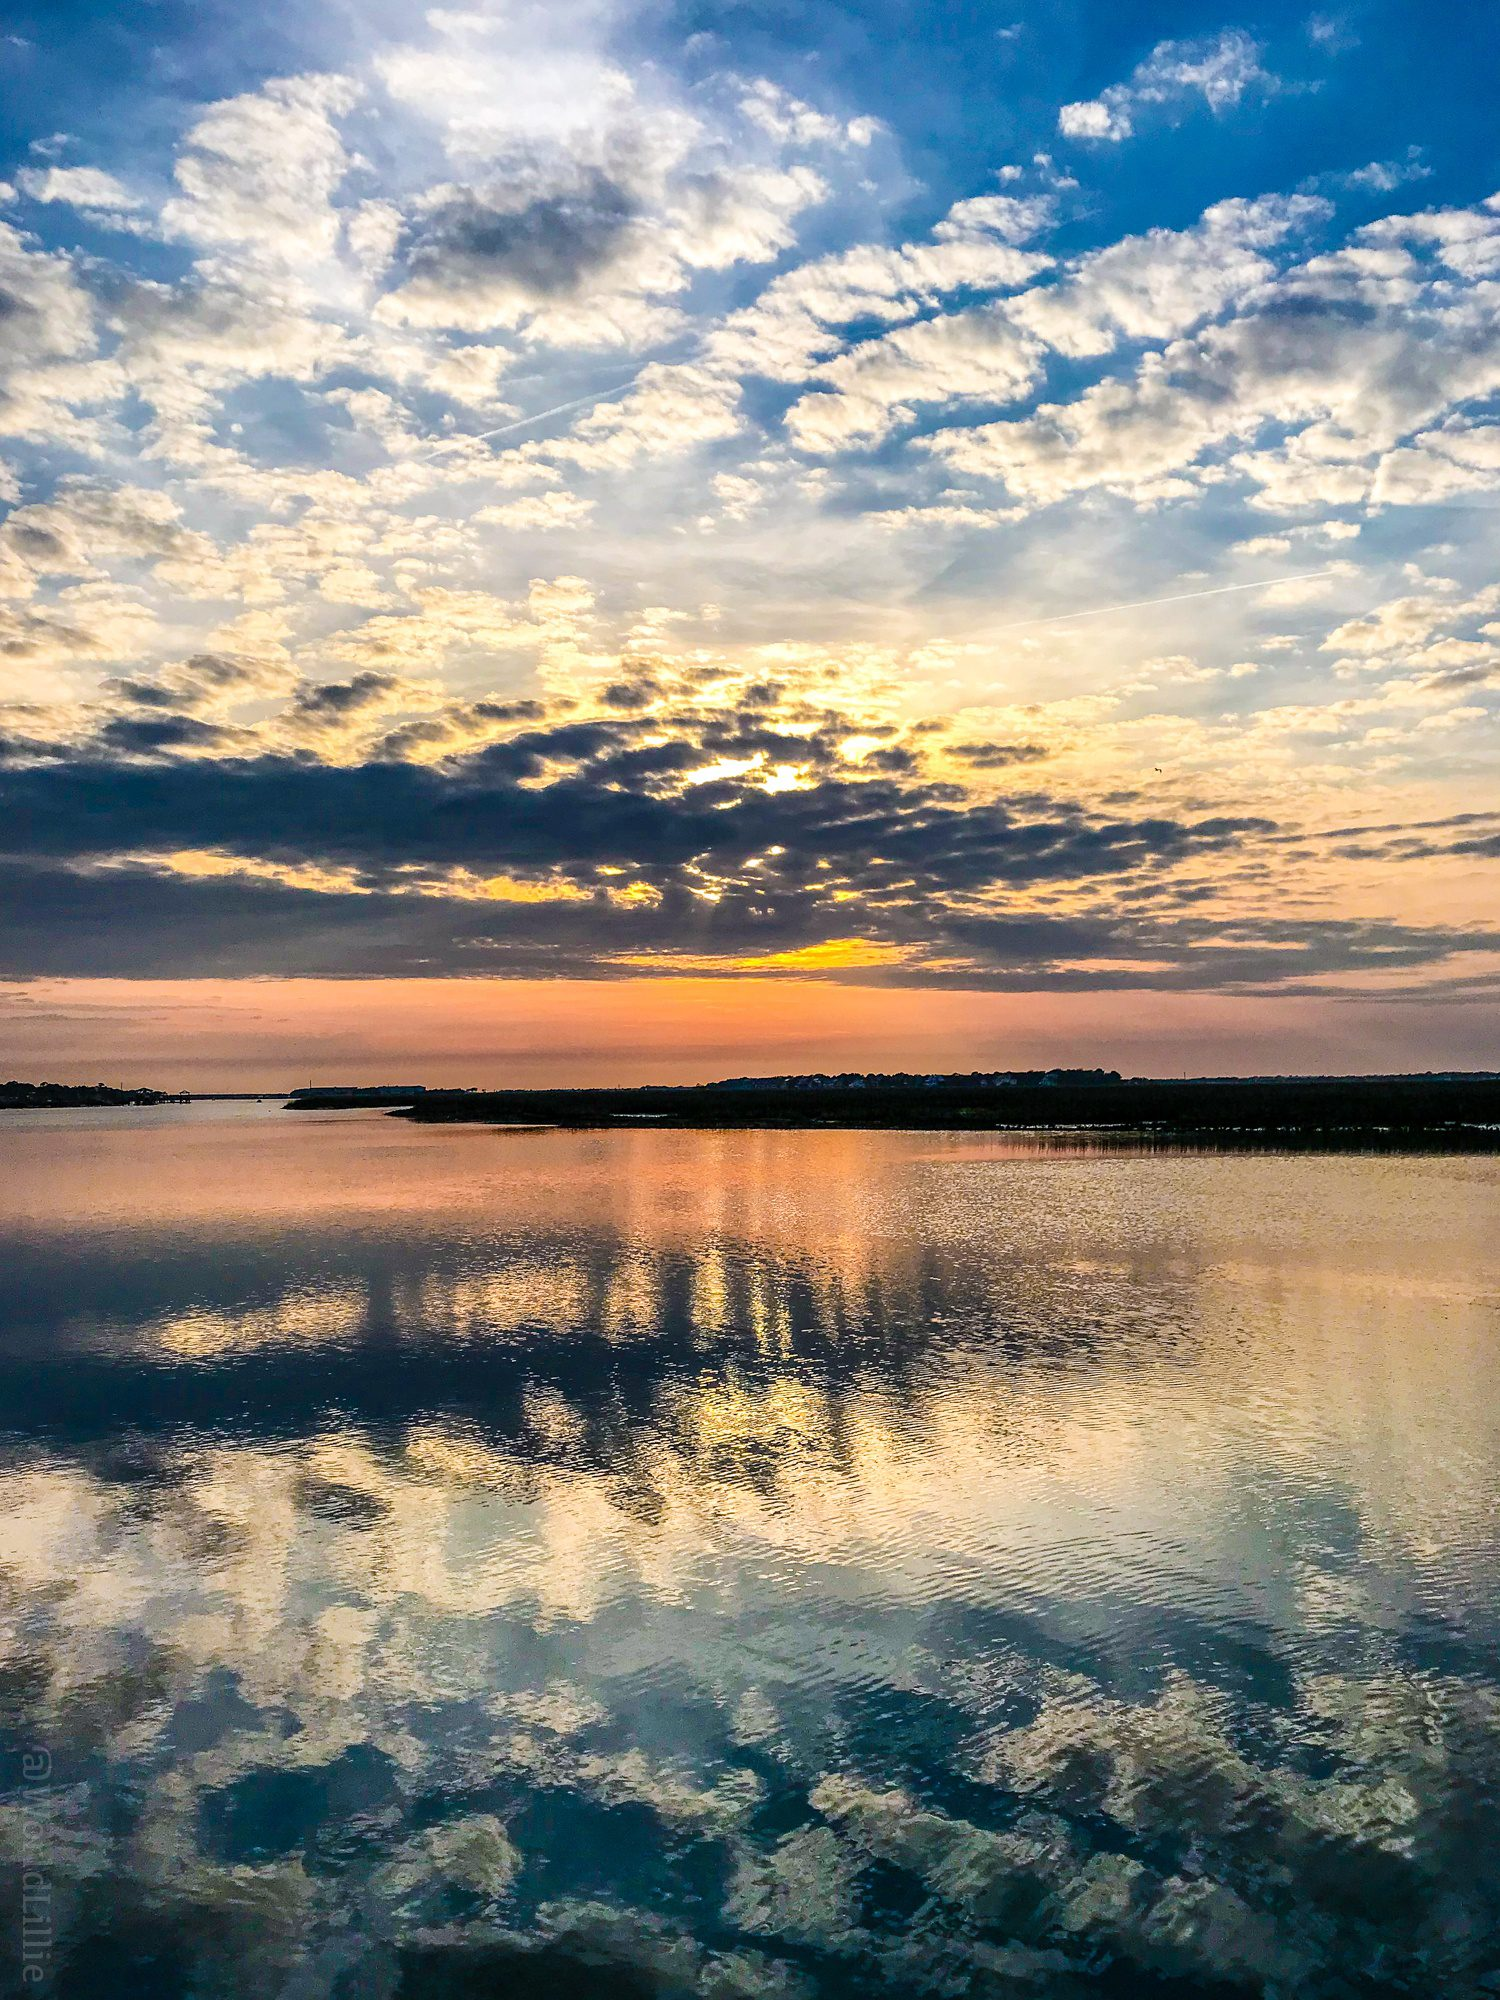 Clouds reflected on water at sunset